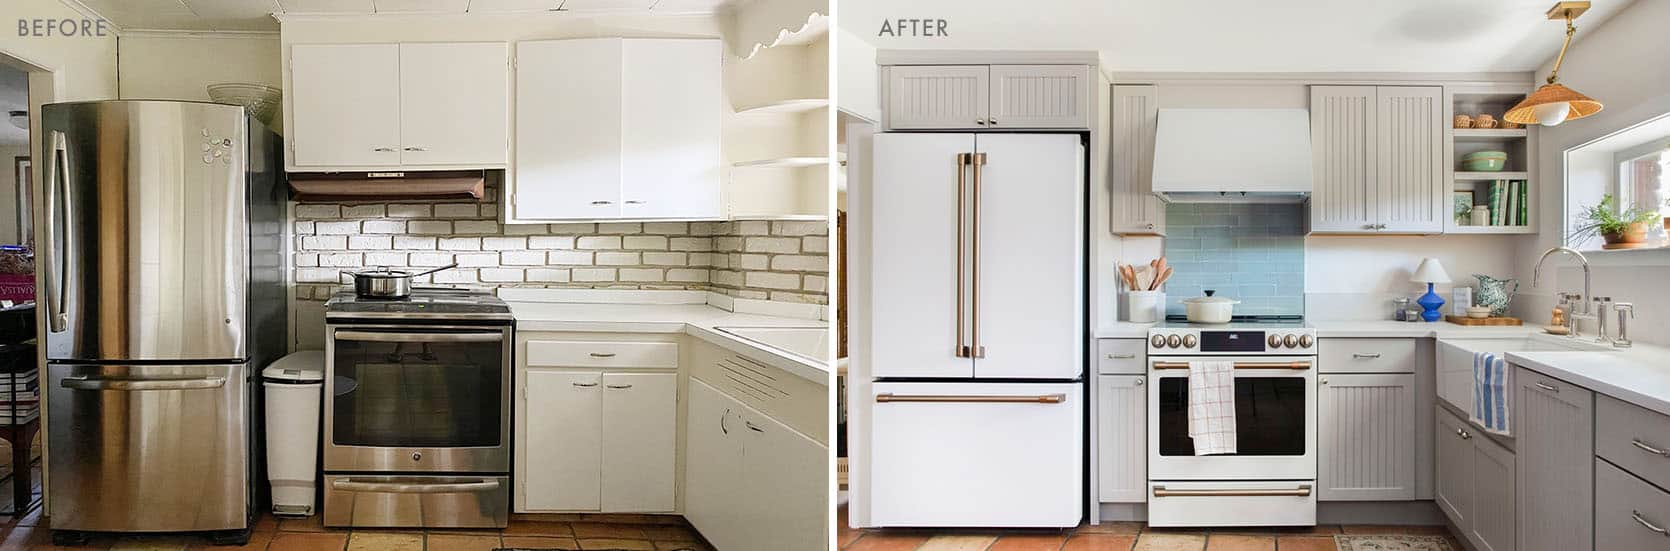 Emily Henderson Coco Kelley Basement Kitchen Reveal Before and After 2